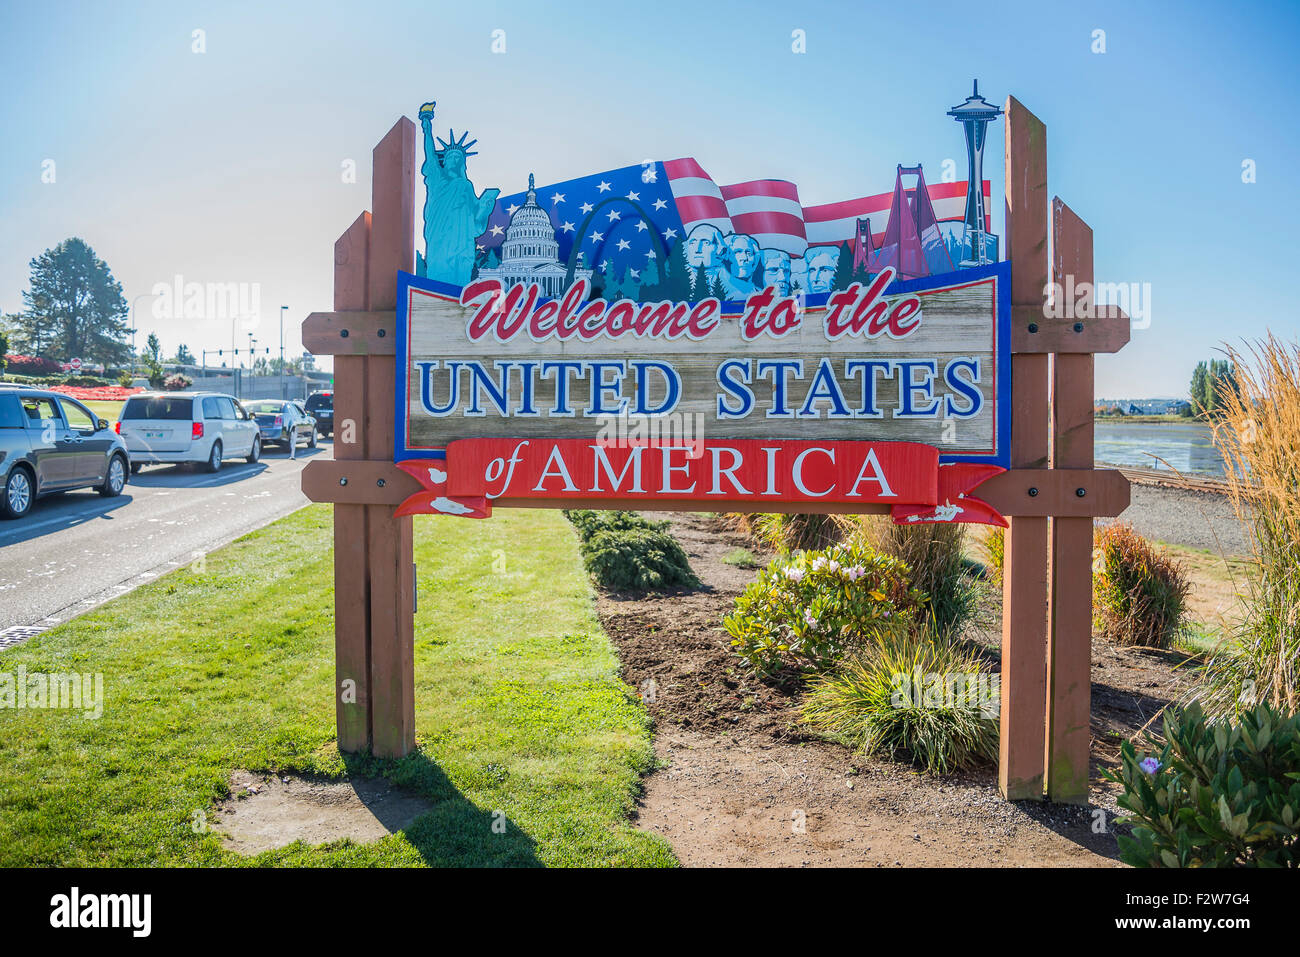 Welcome to the United States sign at Peace Arch, Canada, U.S.A. border crossing. - Stock Image